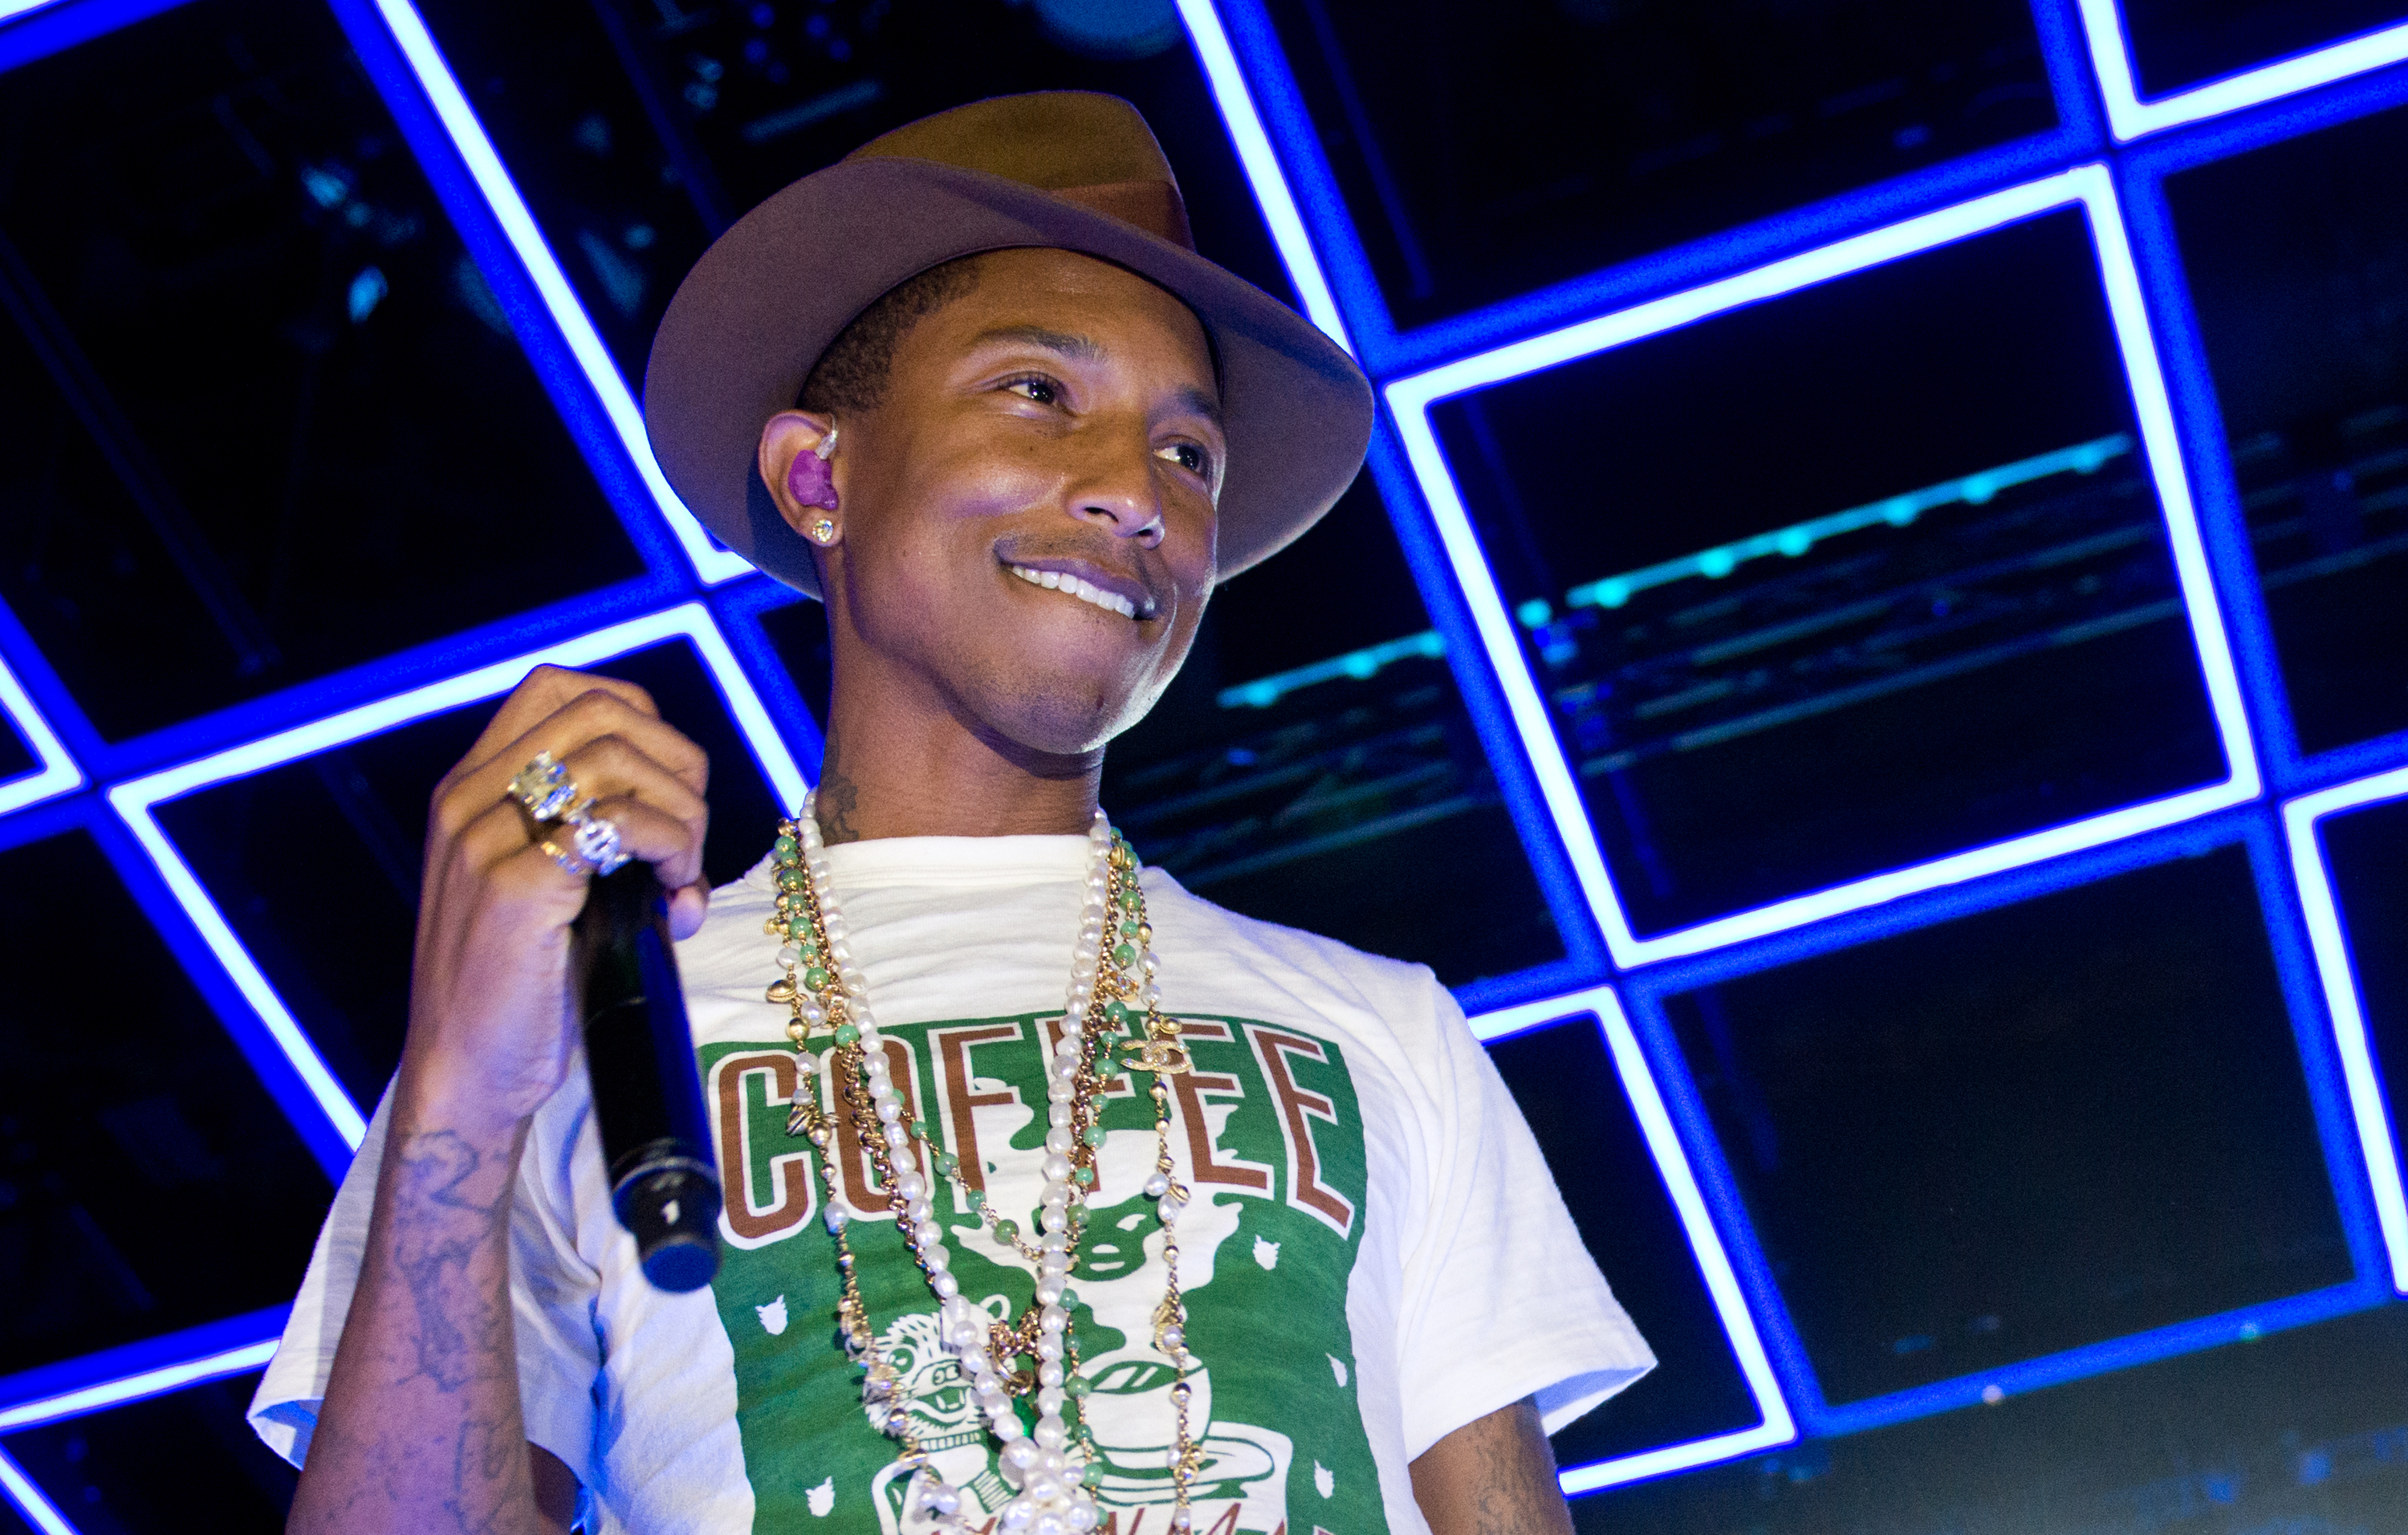 NEW YORK, NY - APRIL 29: Pharrell Williams performs at the Sprint Sound Sessions at Webster Hall on April 29, 2014 in New Yor